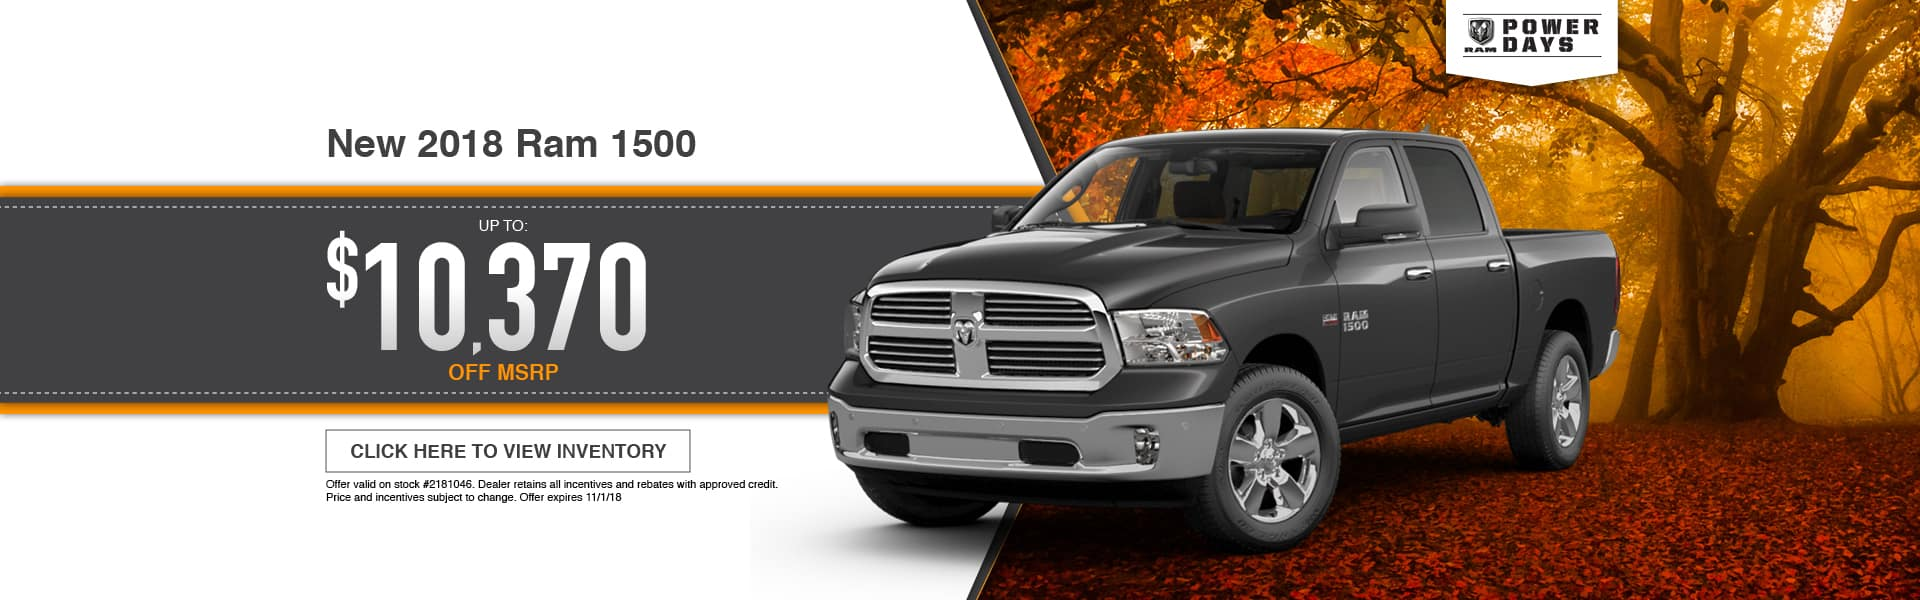 New 2018 RAM 1500 Special at Thomson RAM in Thomson, GA